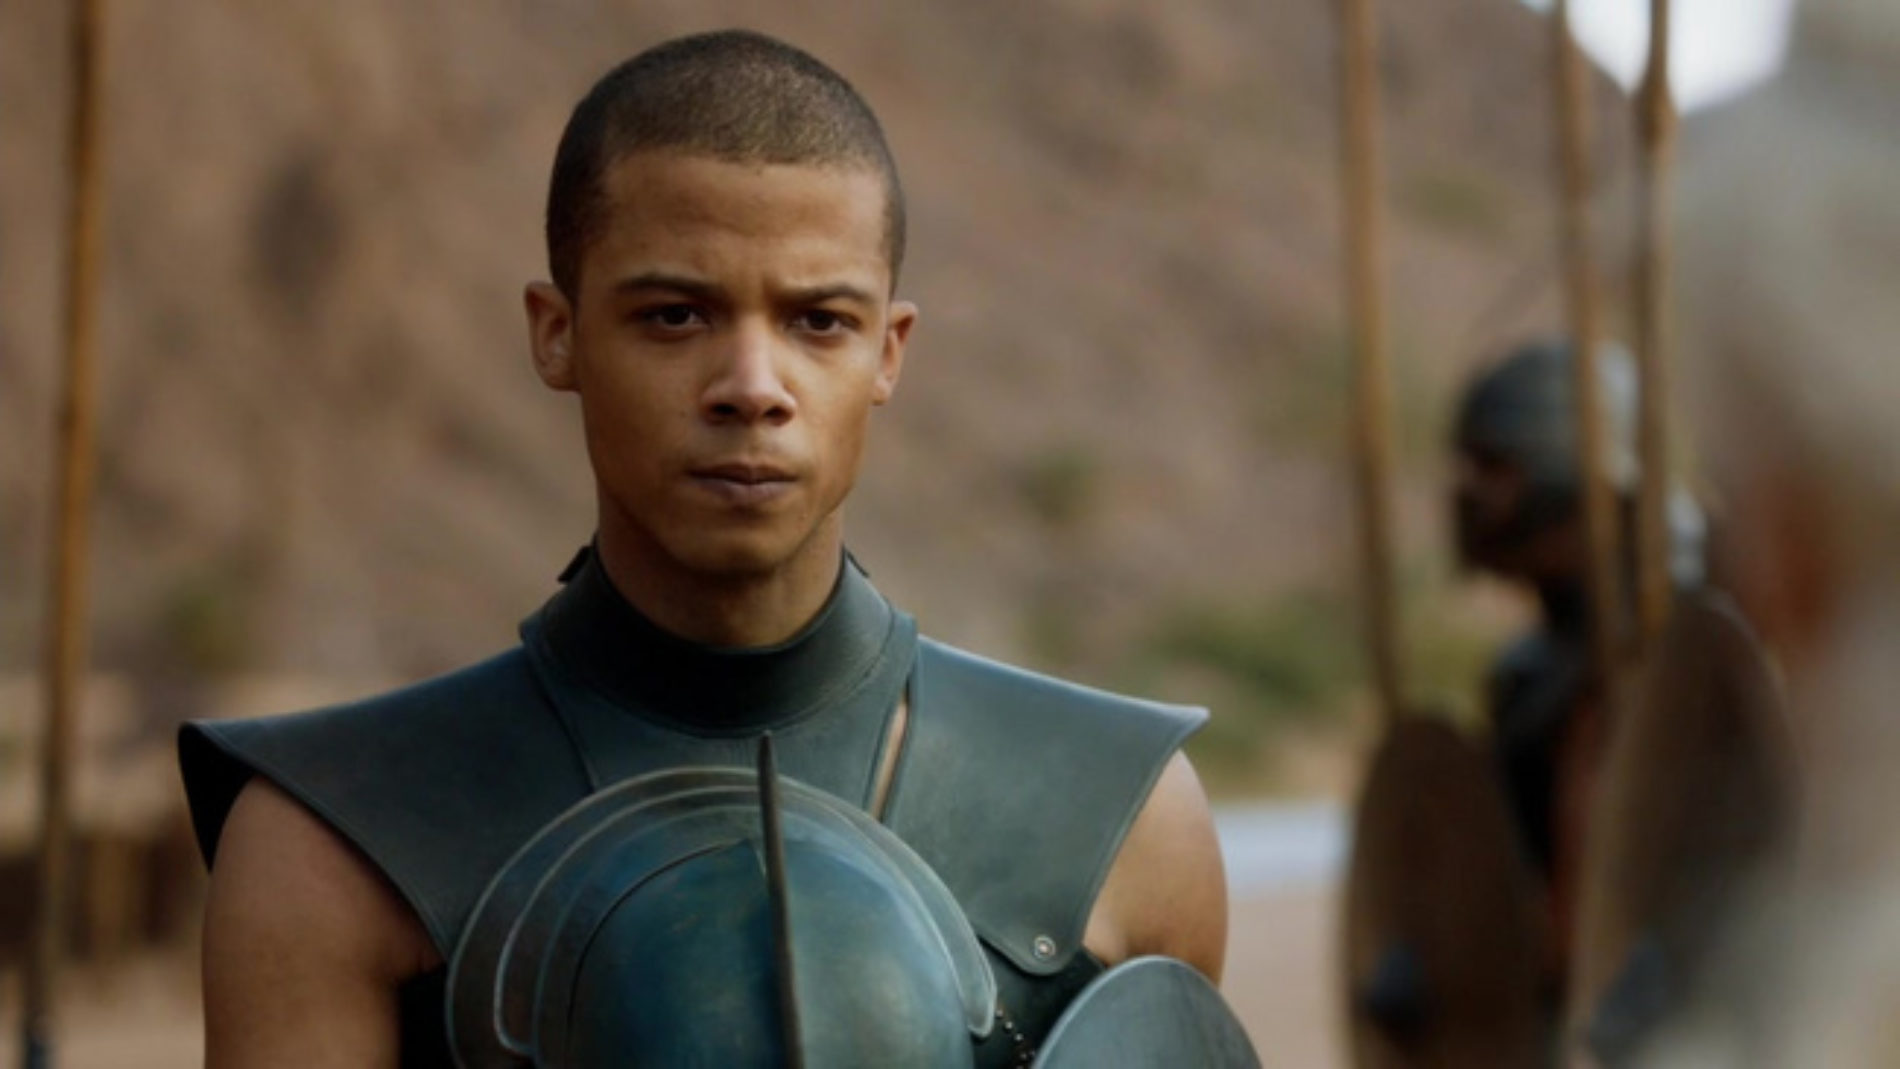 'Game Of Thrones' Star Jacob Anderson says people think he's really castrated